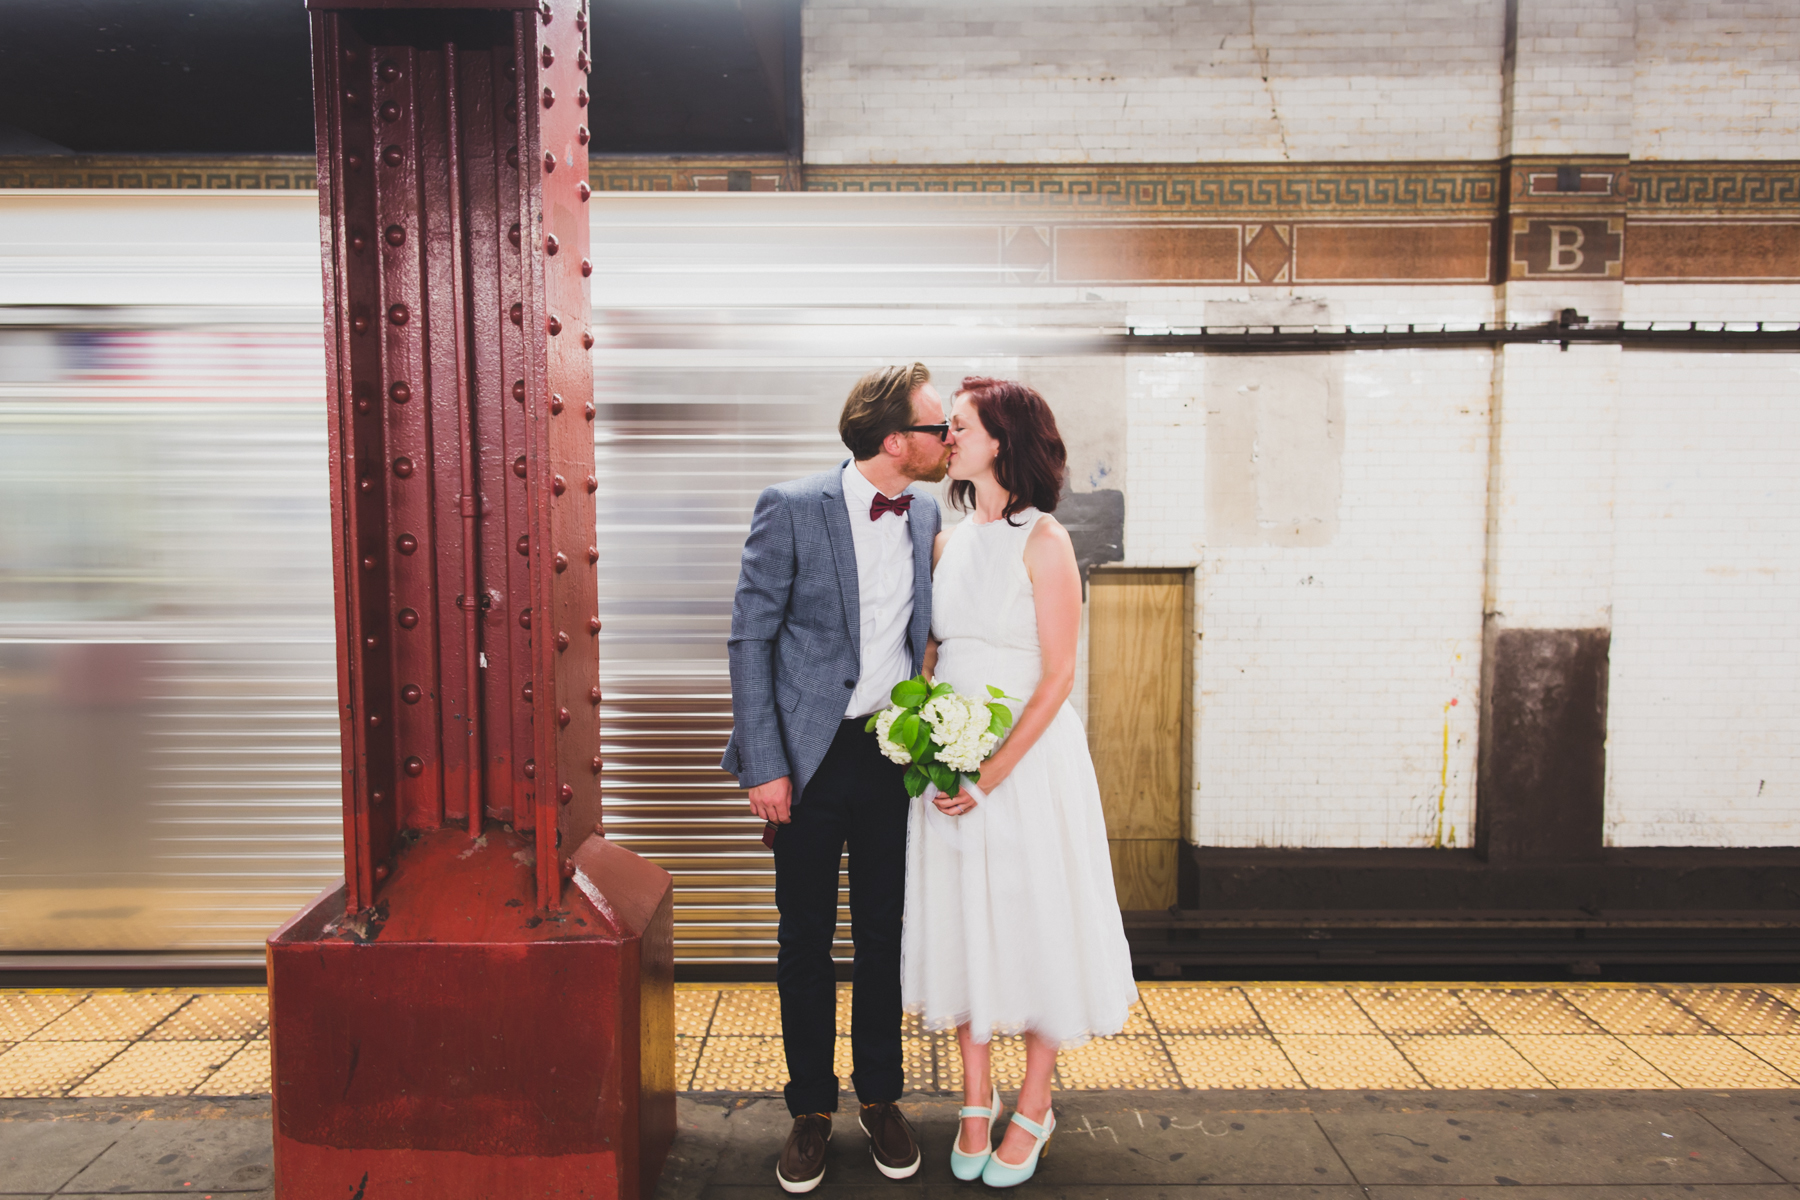 City-Hall-NYC-Elopement-New-York-Documentary-Wedding-Photographer-Elvira-Kalviste-34.jpg